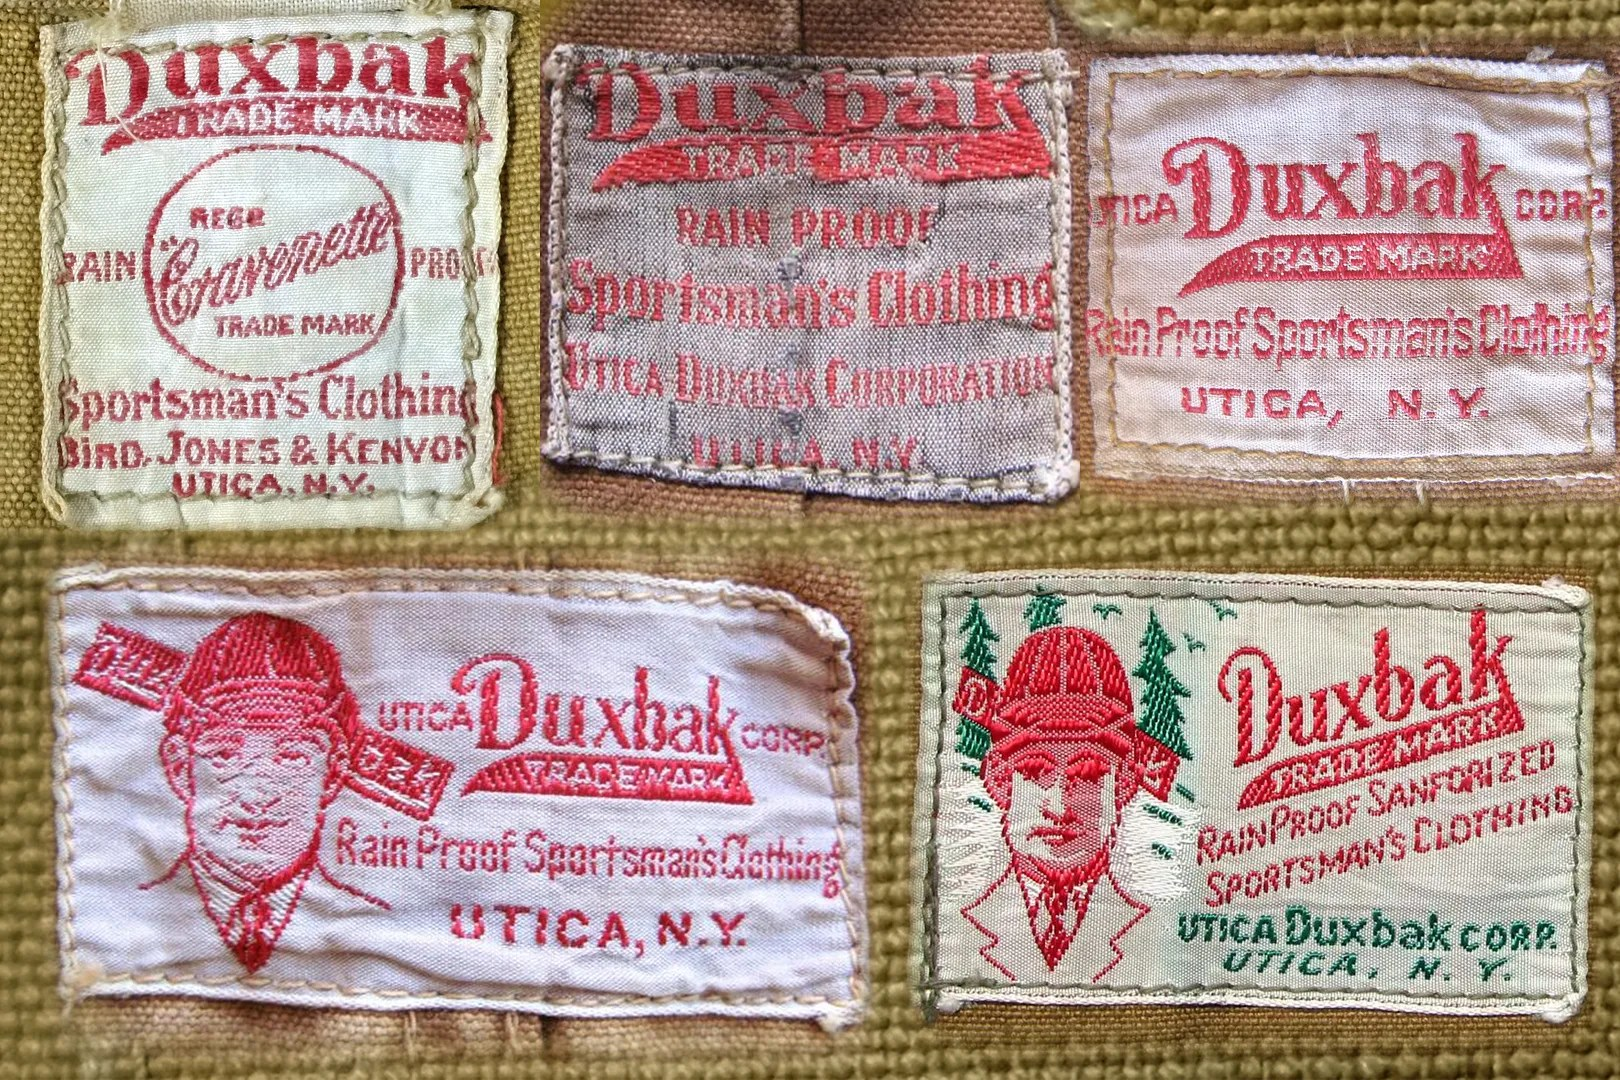 photo edit duxbak labels.jpg